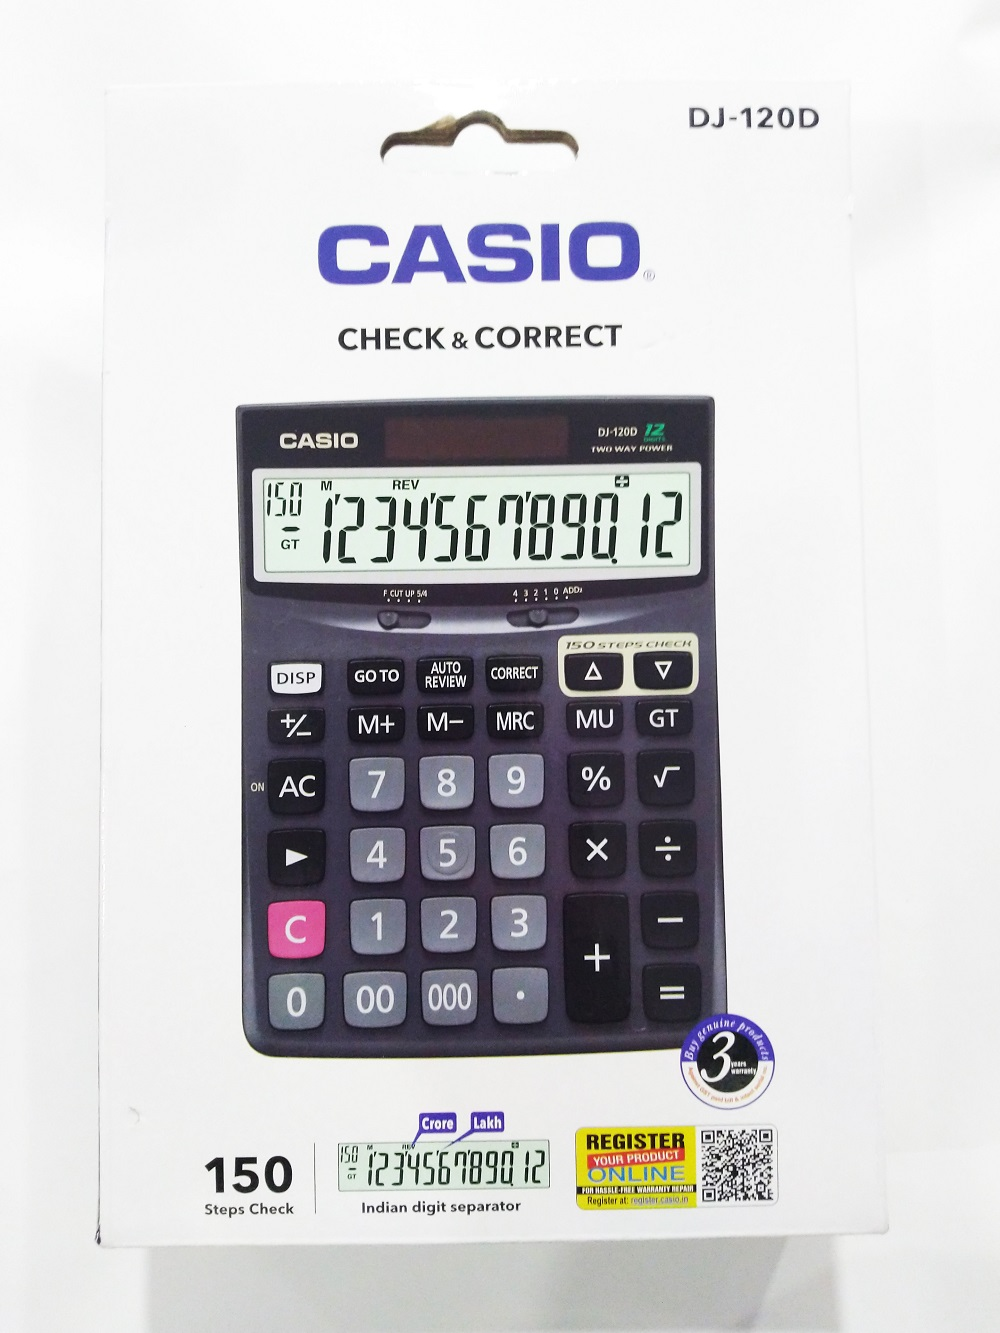 Casio DJ-120D Calculator 3Years Warranty with Check and Correct Function